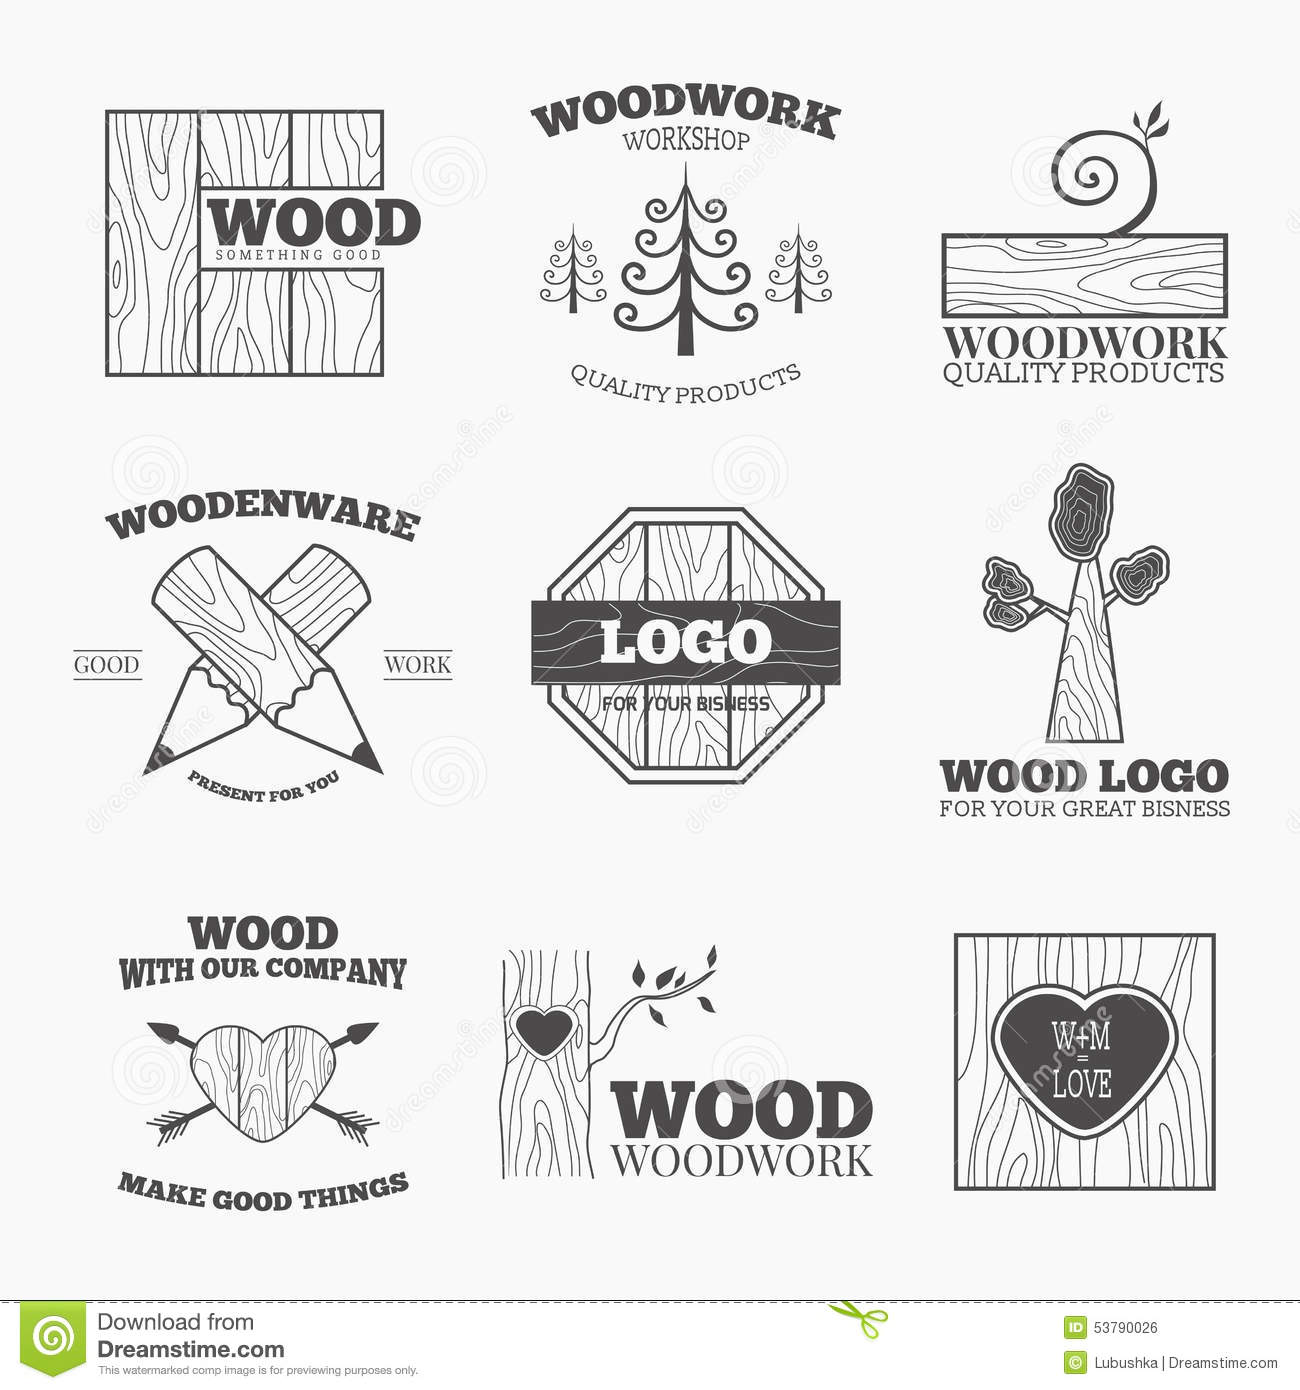 Wood products logo vector stock vector. Illustration of ...